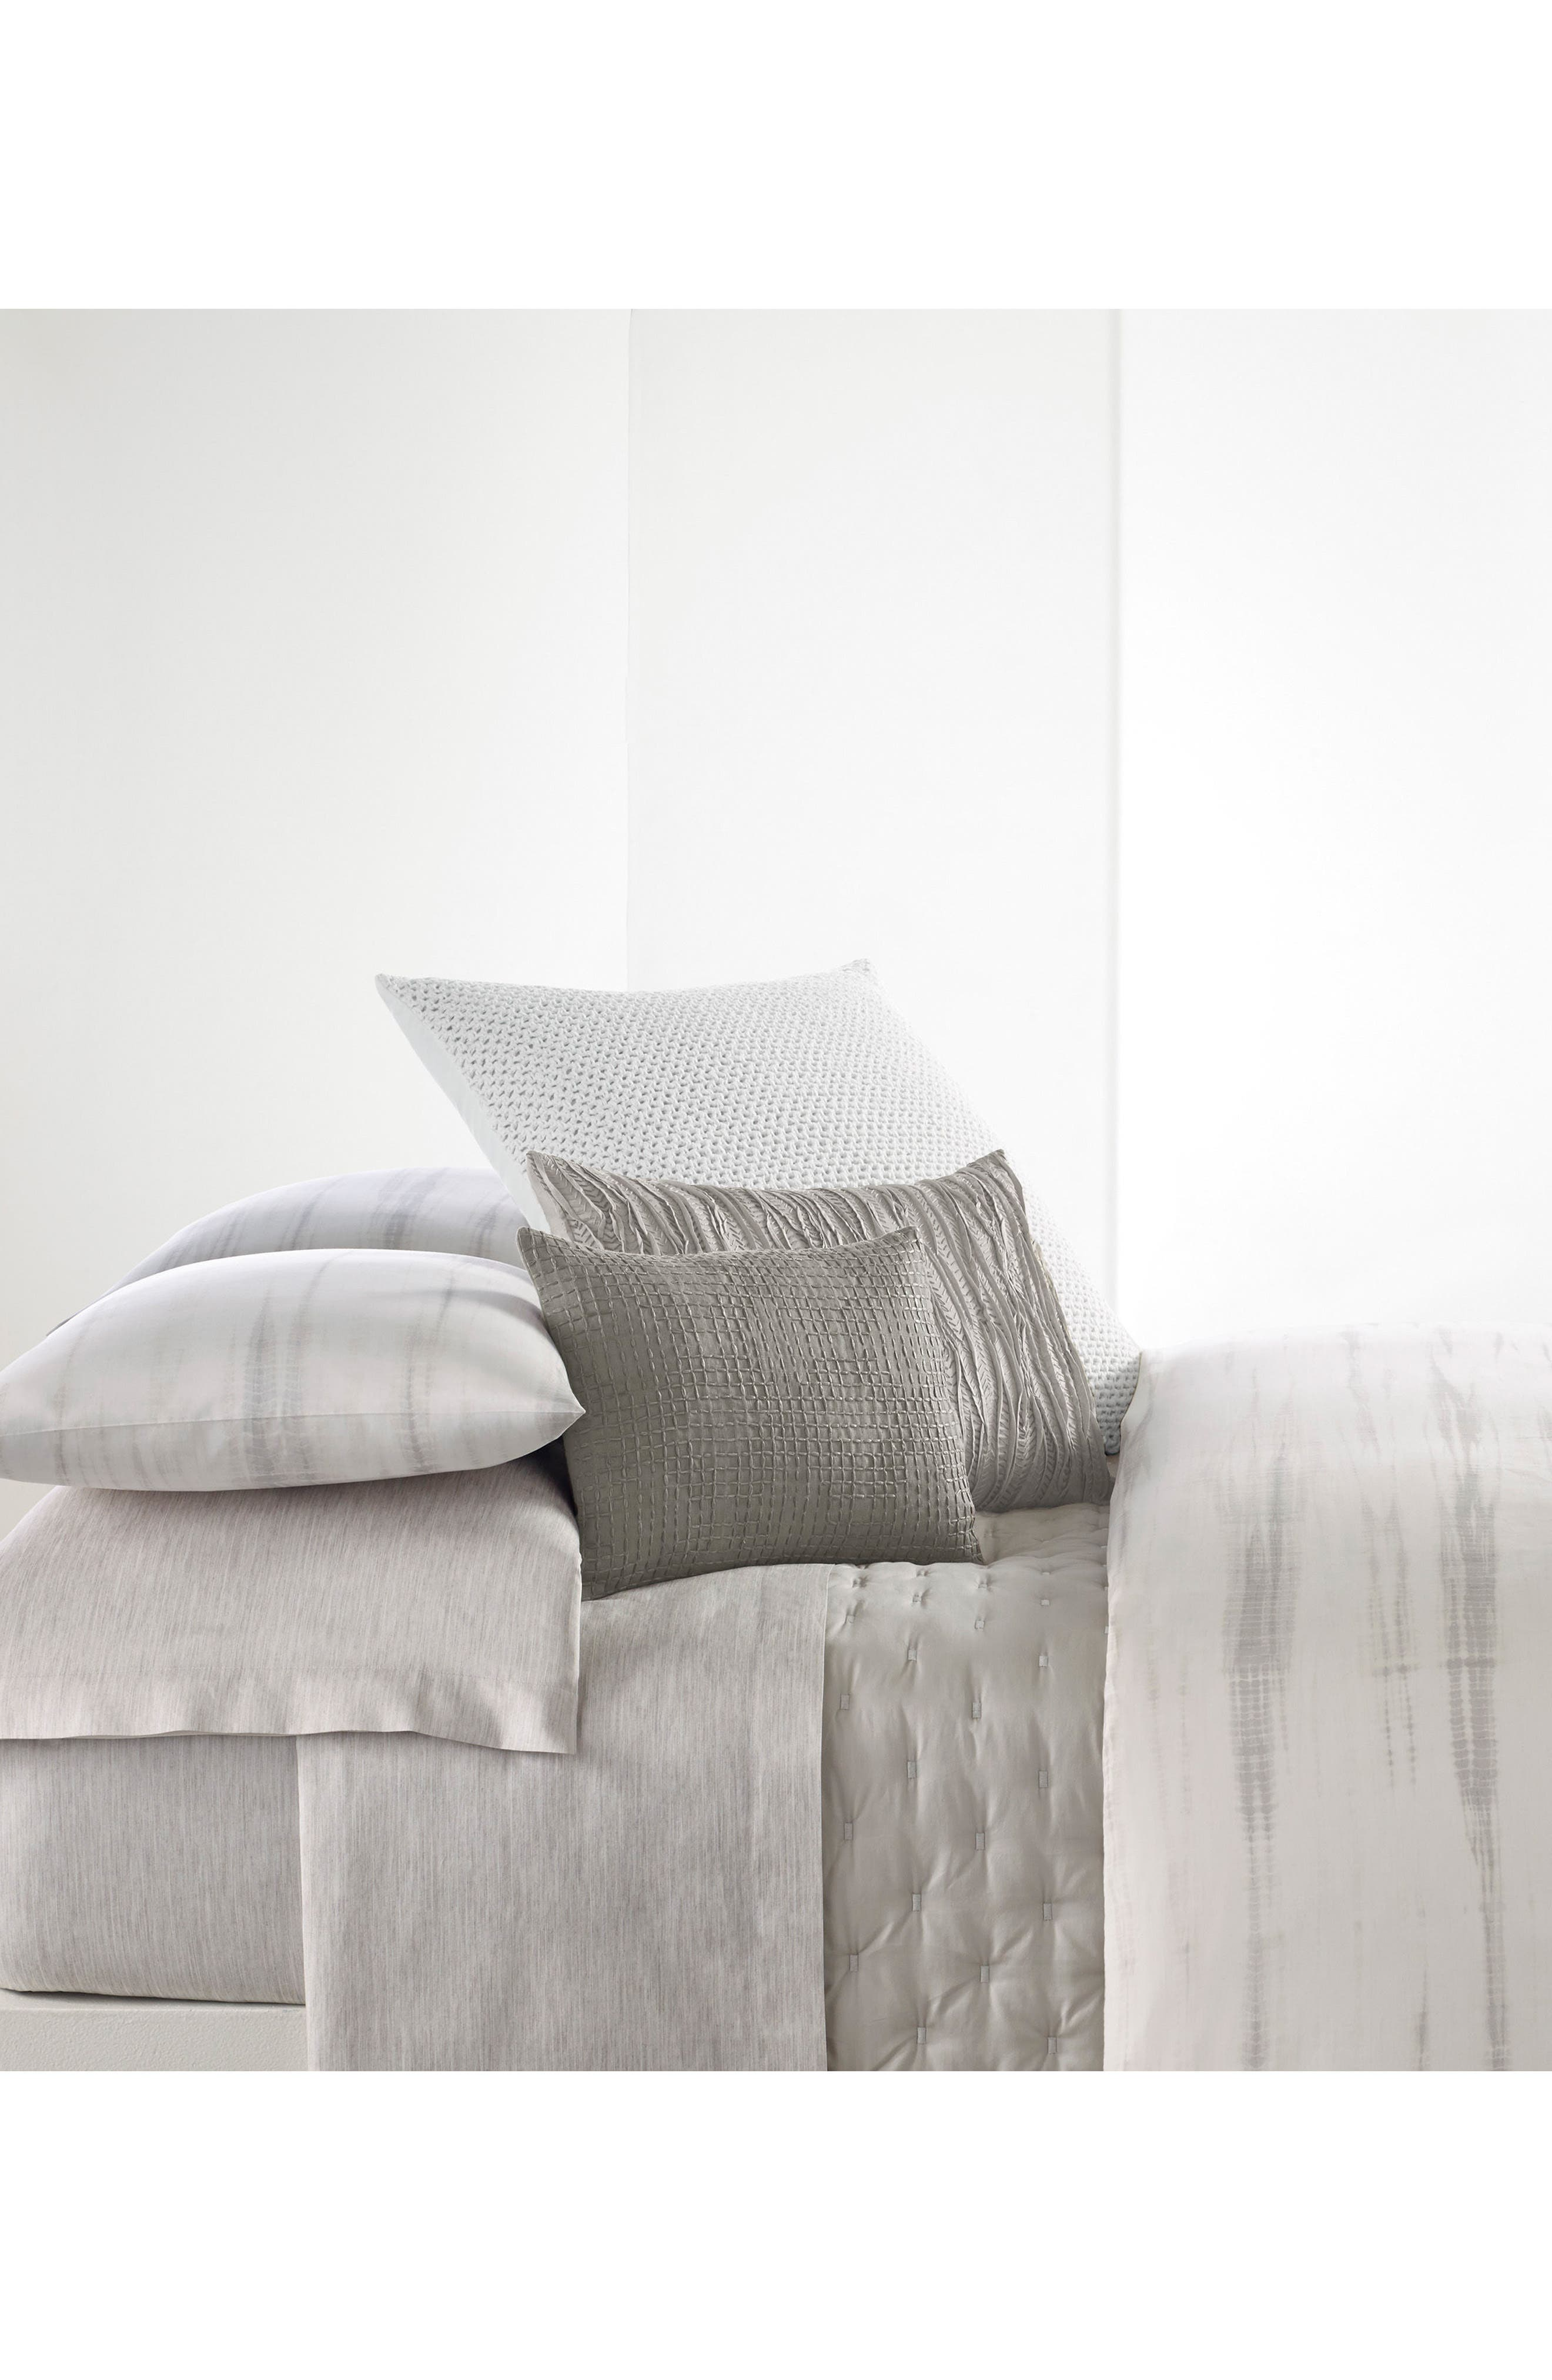 Vera Wang Marble Shibori 350 Thread Count Duvet Cover